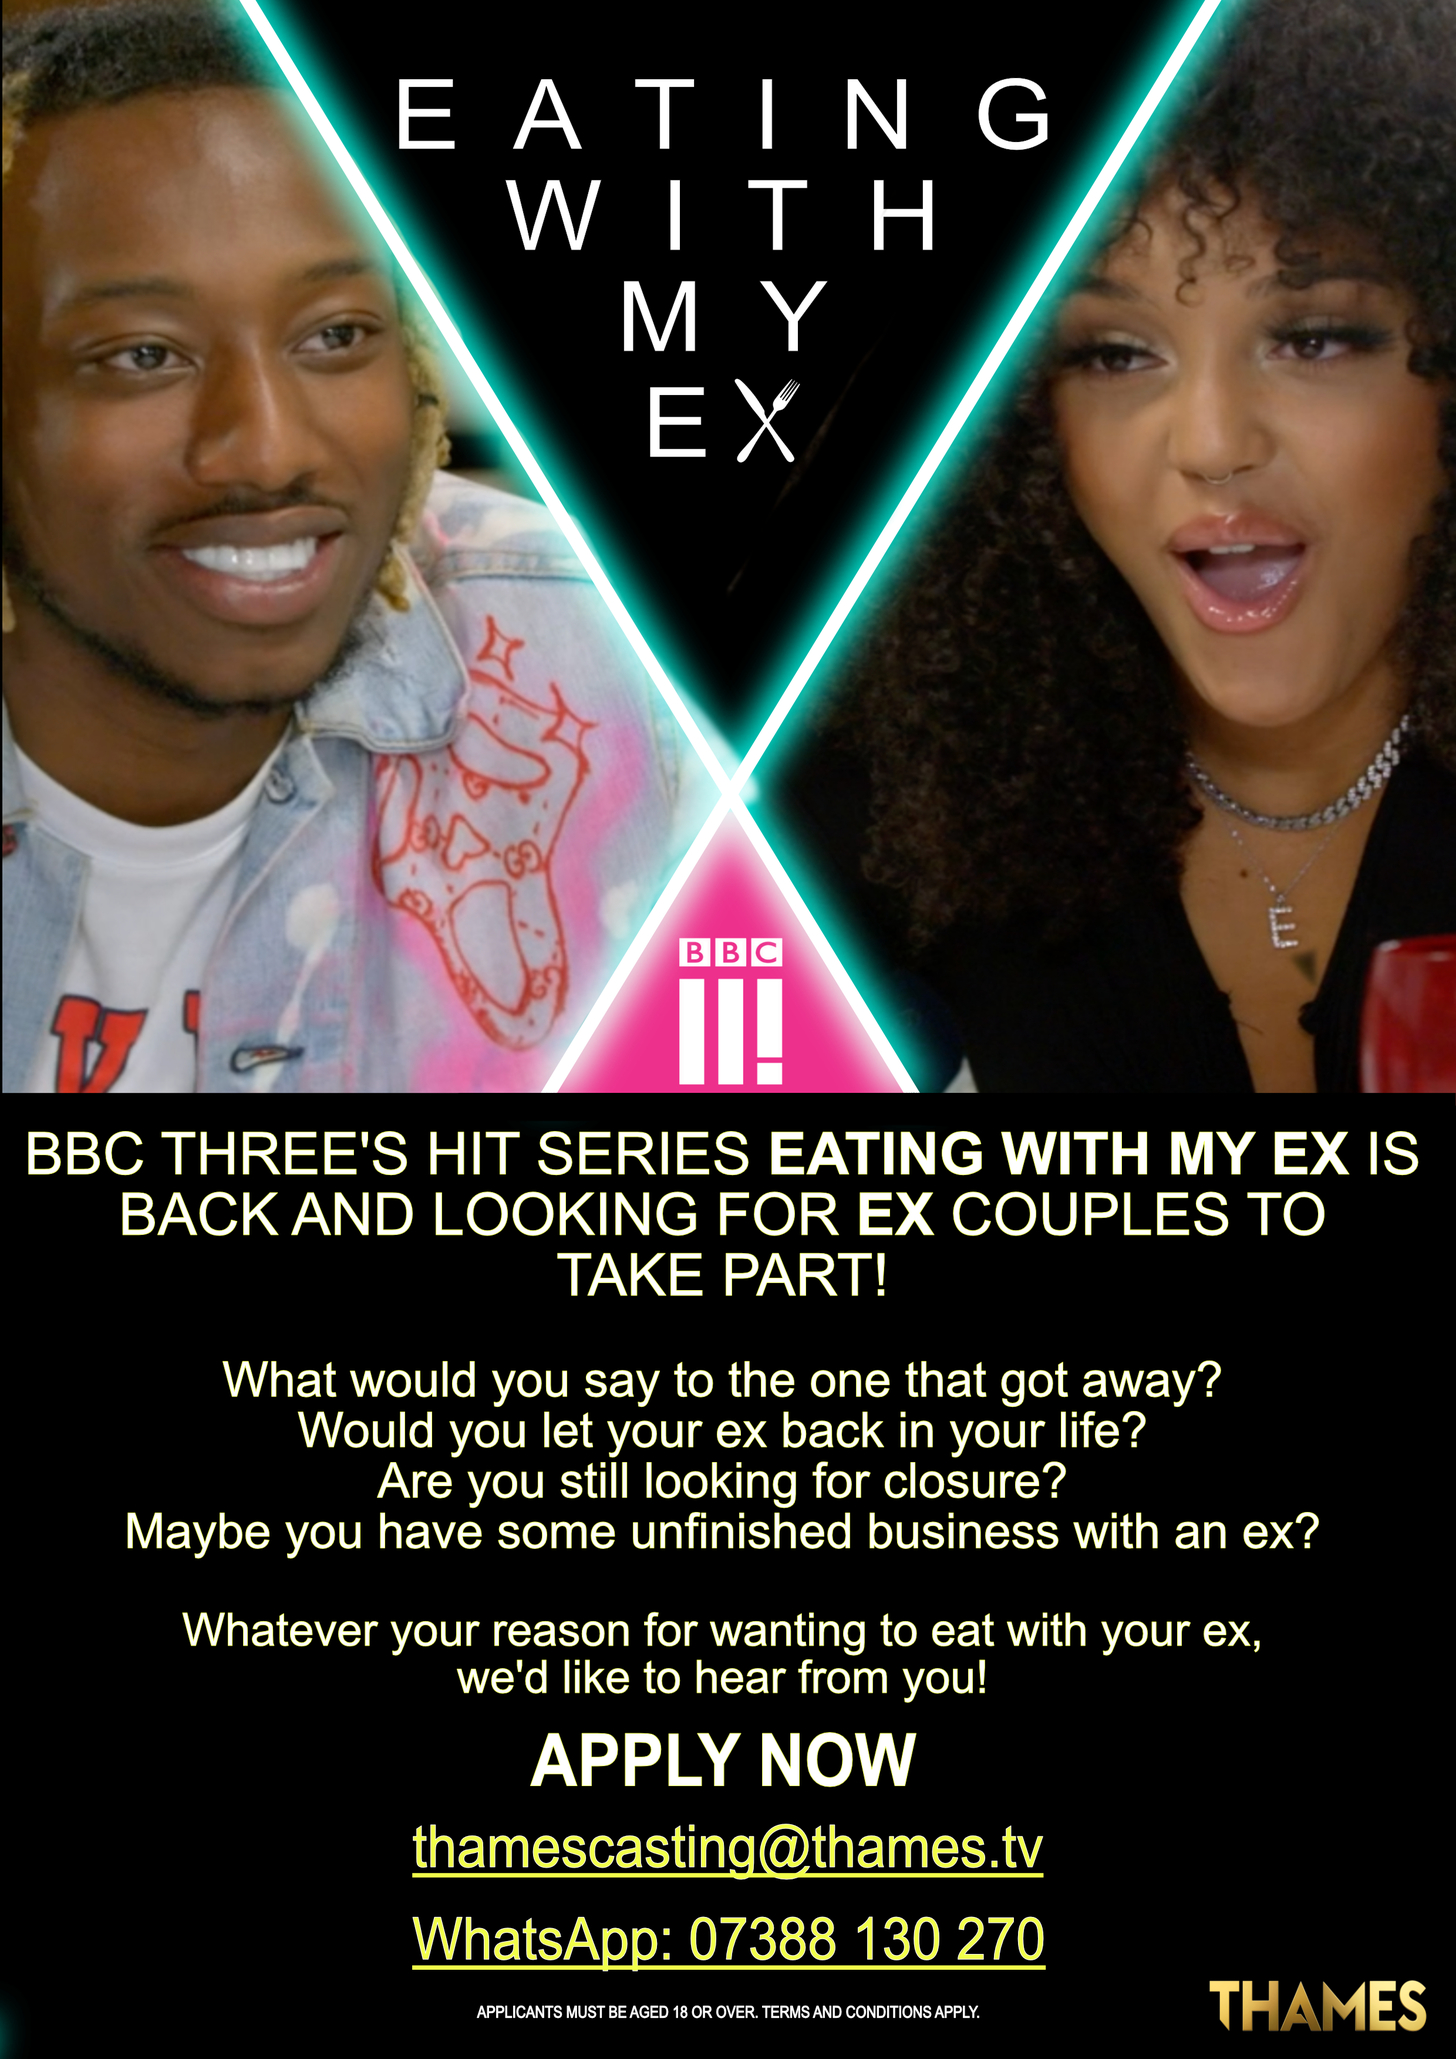 casting call for the BBC 3 show eating with my ex All of the information on the poster is listed above